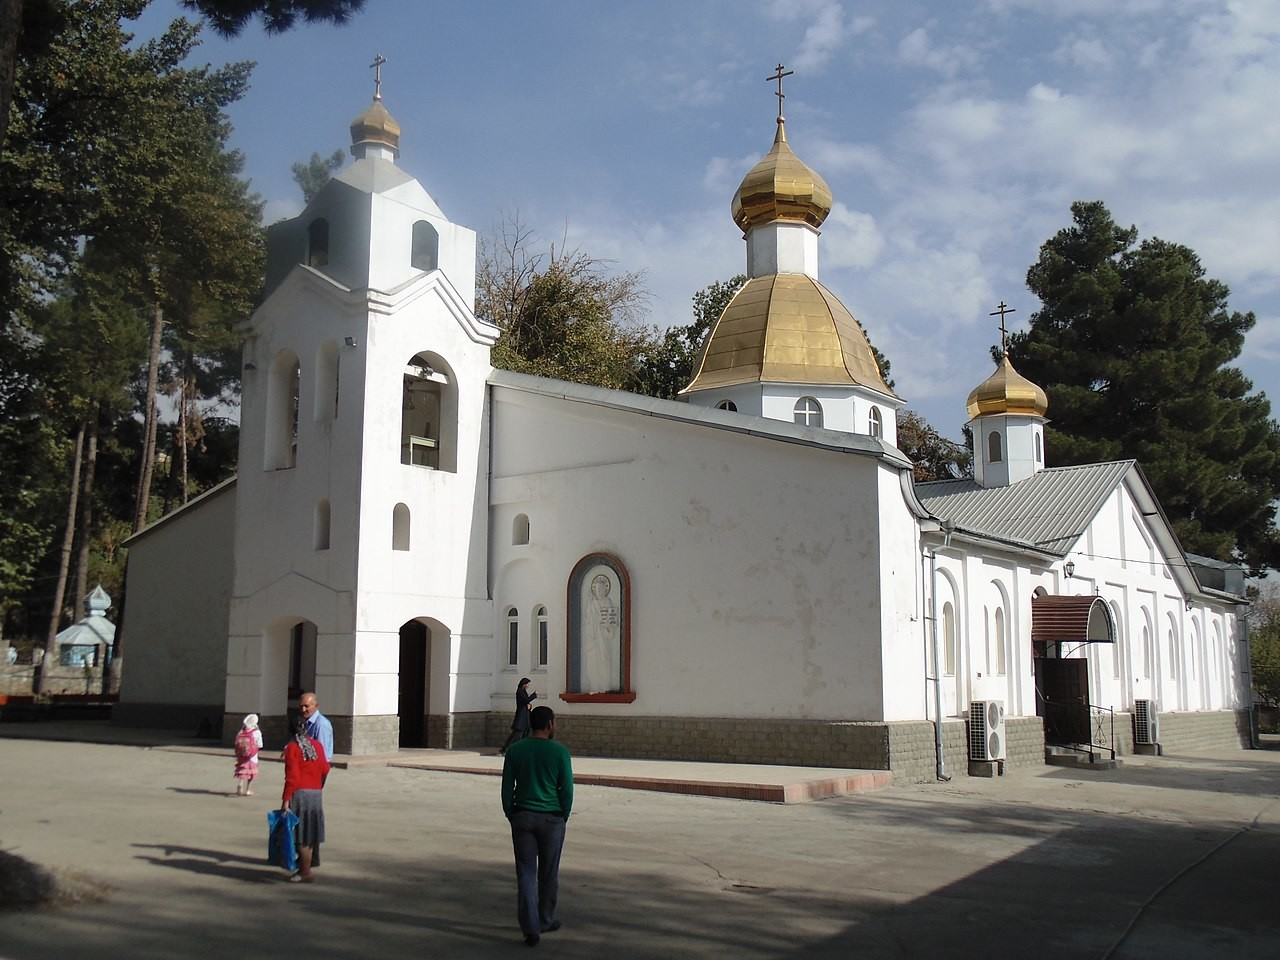 St. Nicholas Cathedral in Dushanbe, present-day Tajikistan, built in 1943